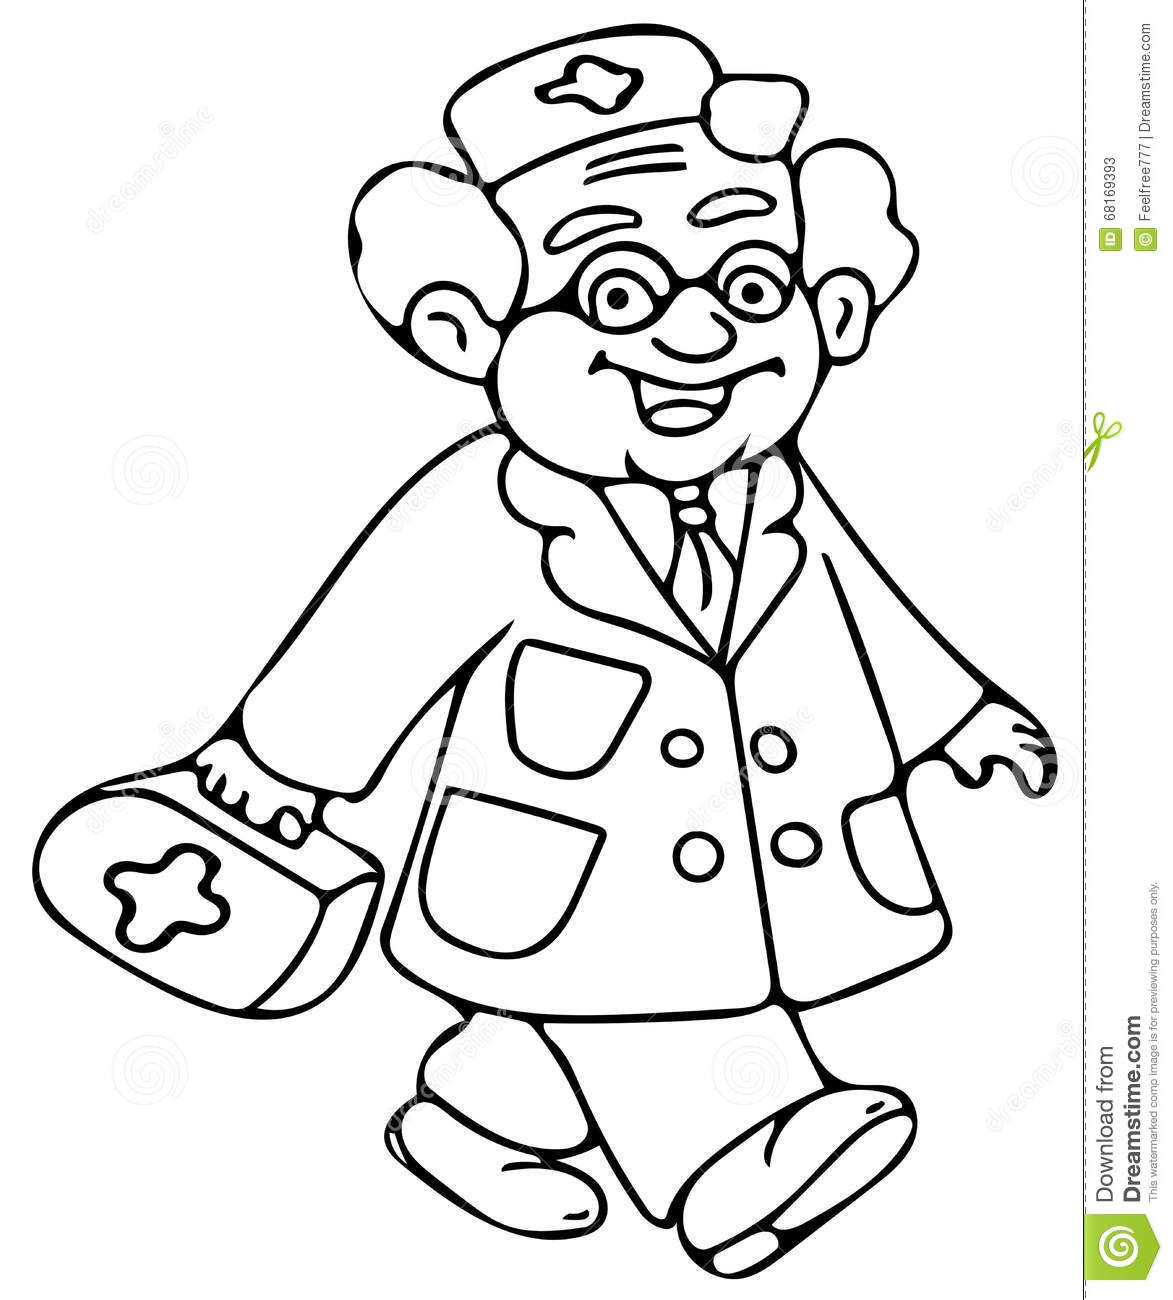 Stock Photos Kids Doctor Coloring Pages Image